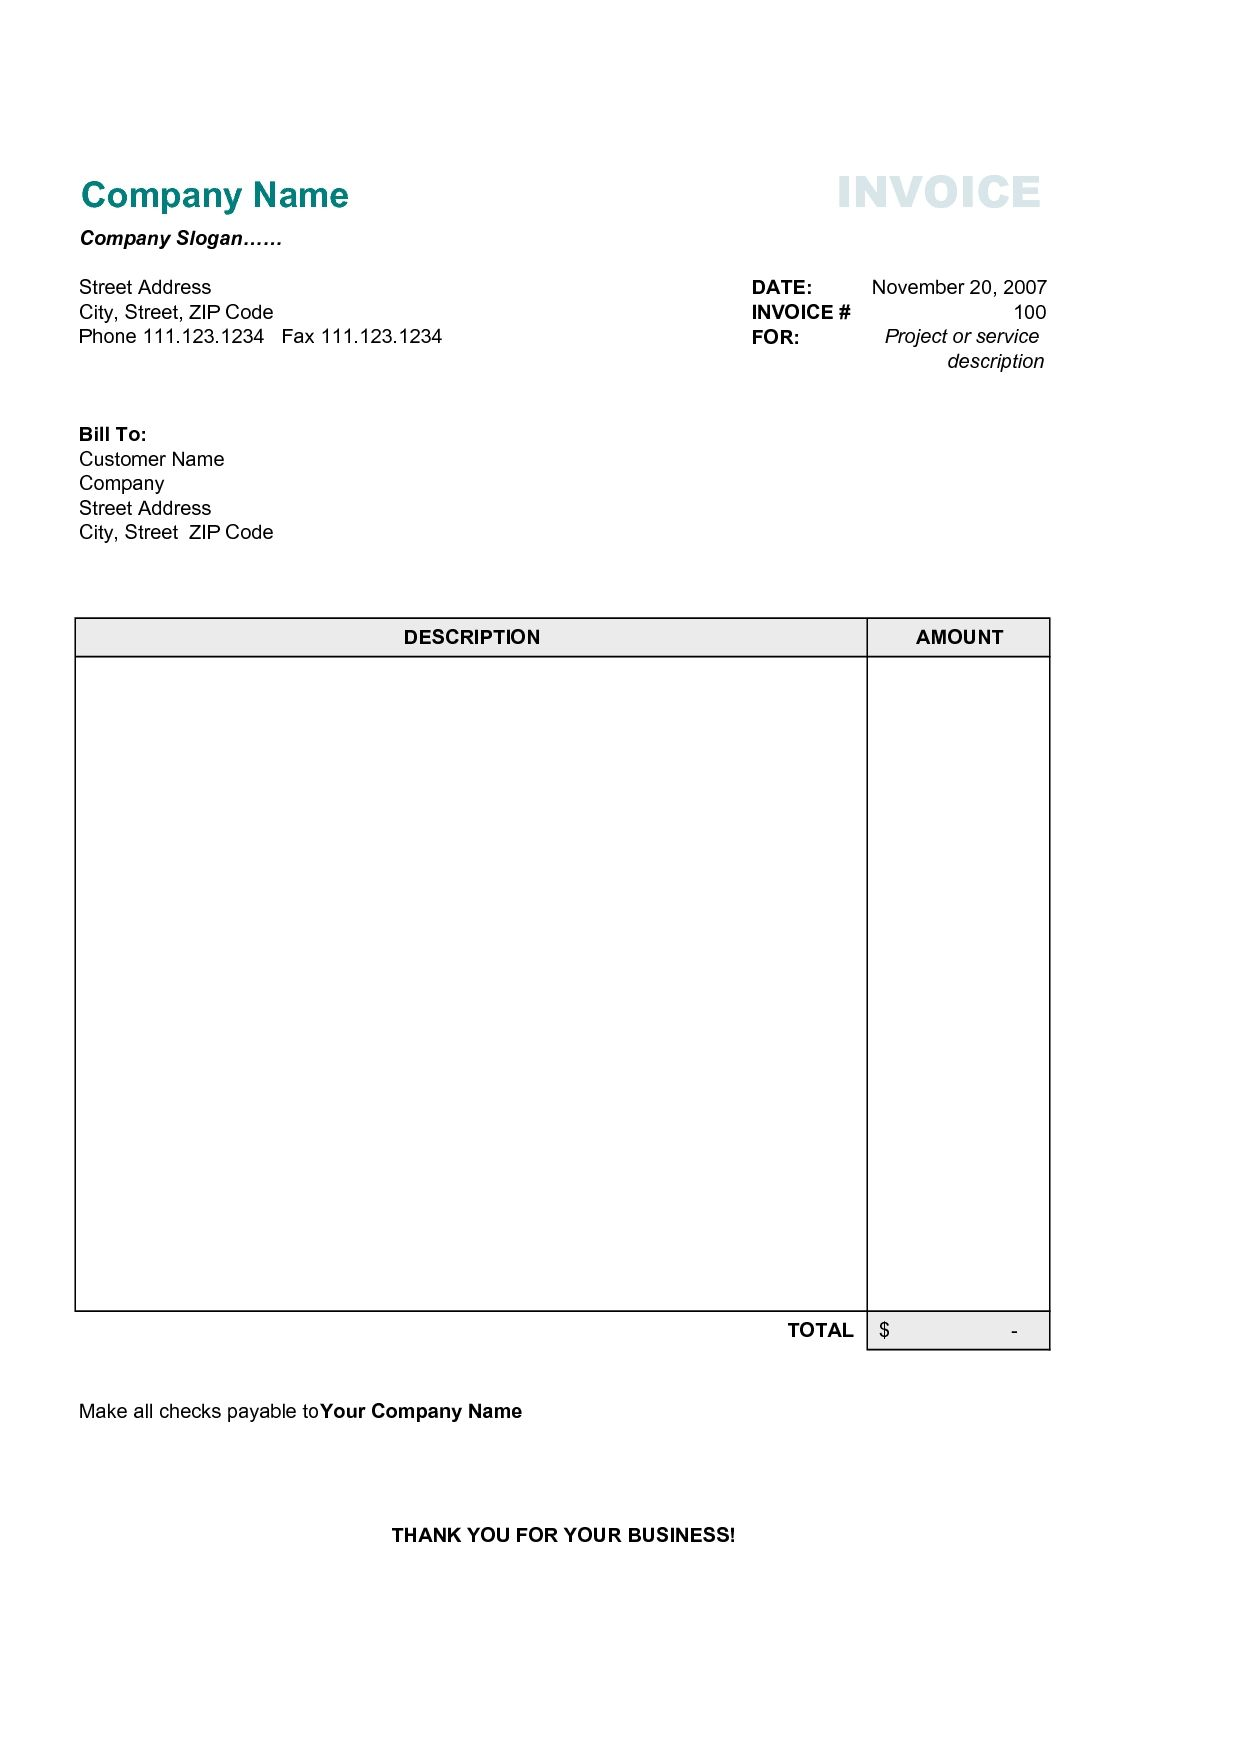 Free Business Invoice Template Best Business Template Free Invoice - Sample invoice template free for service business